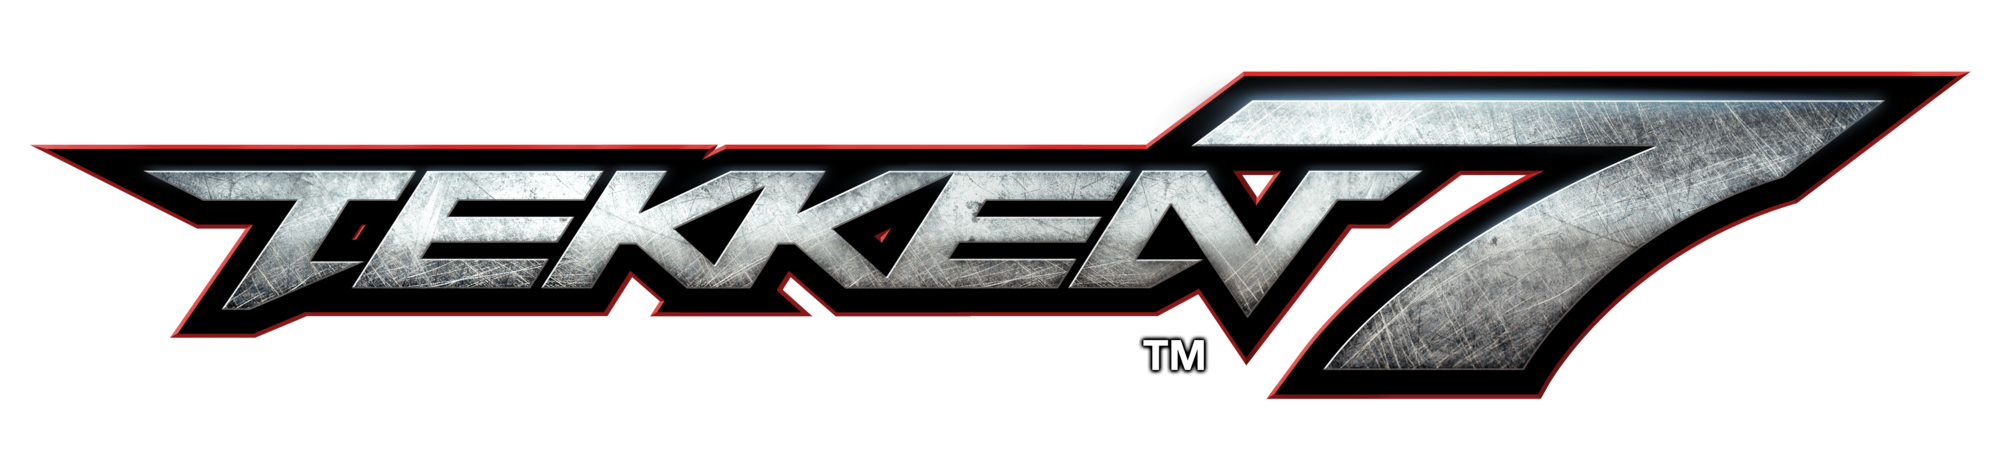 Tekken 7 | Tekken Wiki | FANDOM powered by Wikia